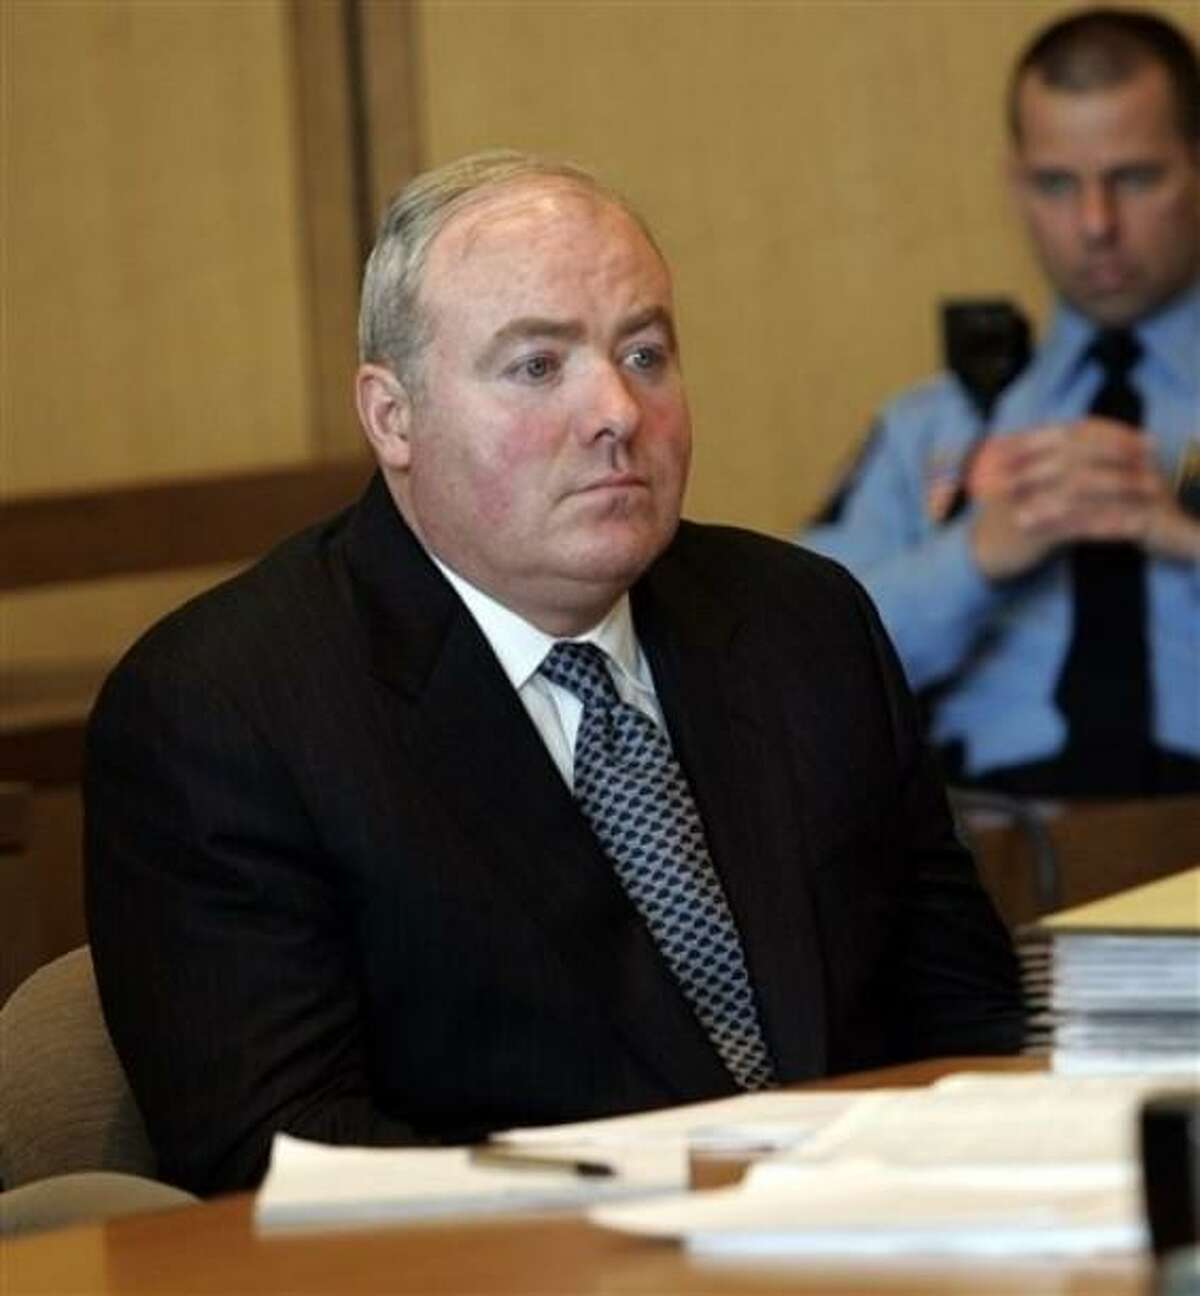 FILE - In this April 17, 2007 file photo, Michael Skakel sits in the courtroom at Superior Court in Stamford, Conn., on the first day of a hearing to determine whether he will get a new trial for the 1975 murder of 15-year-old Martha Moxley. The Connecticut Supreme Court is planning to release its ruling Monday, April 12, 2010, on Skakel's appeal of his conviction in the 1975 slaying. (AP Photo/Bob Child, File)